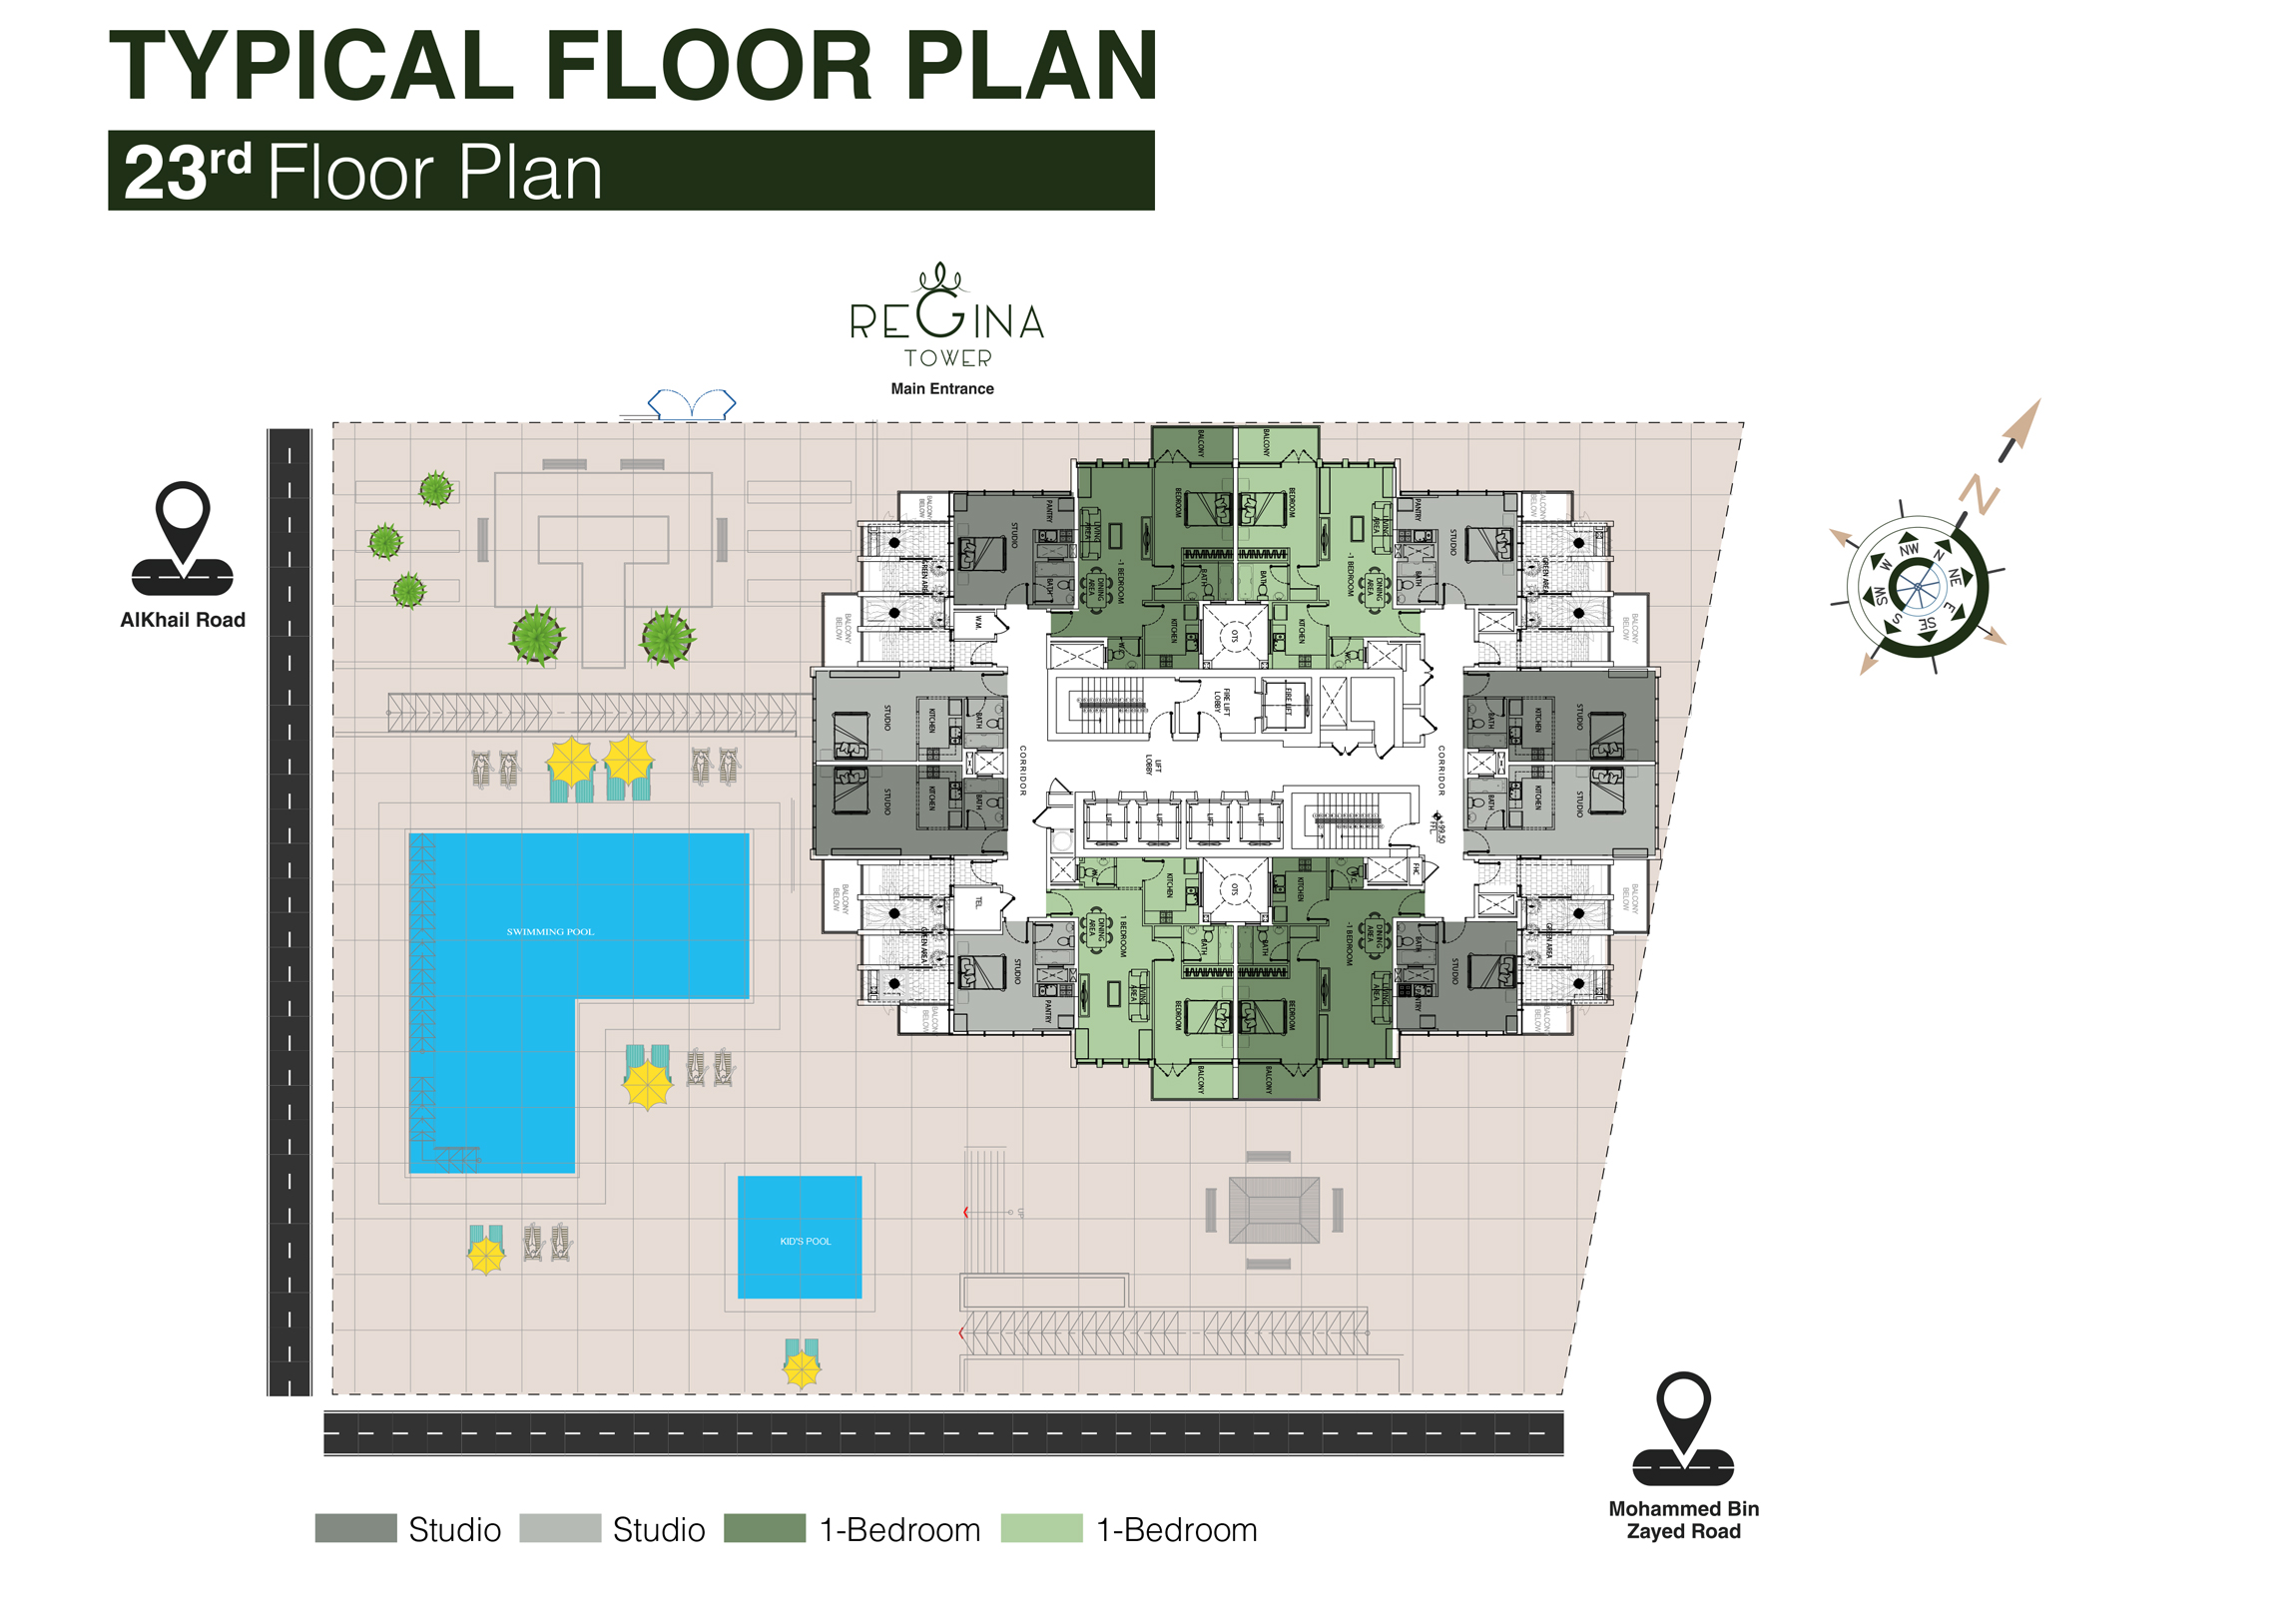 Typical Floor Plan 23rd Floor